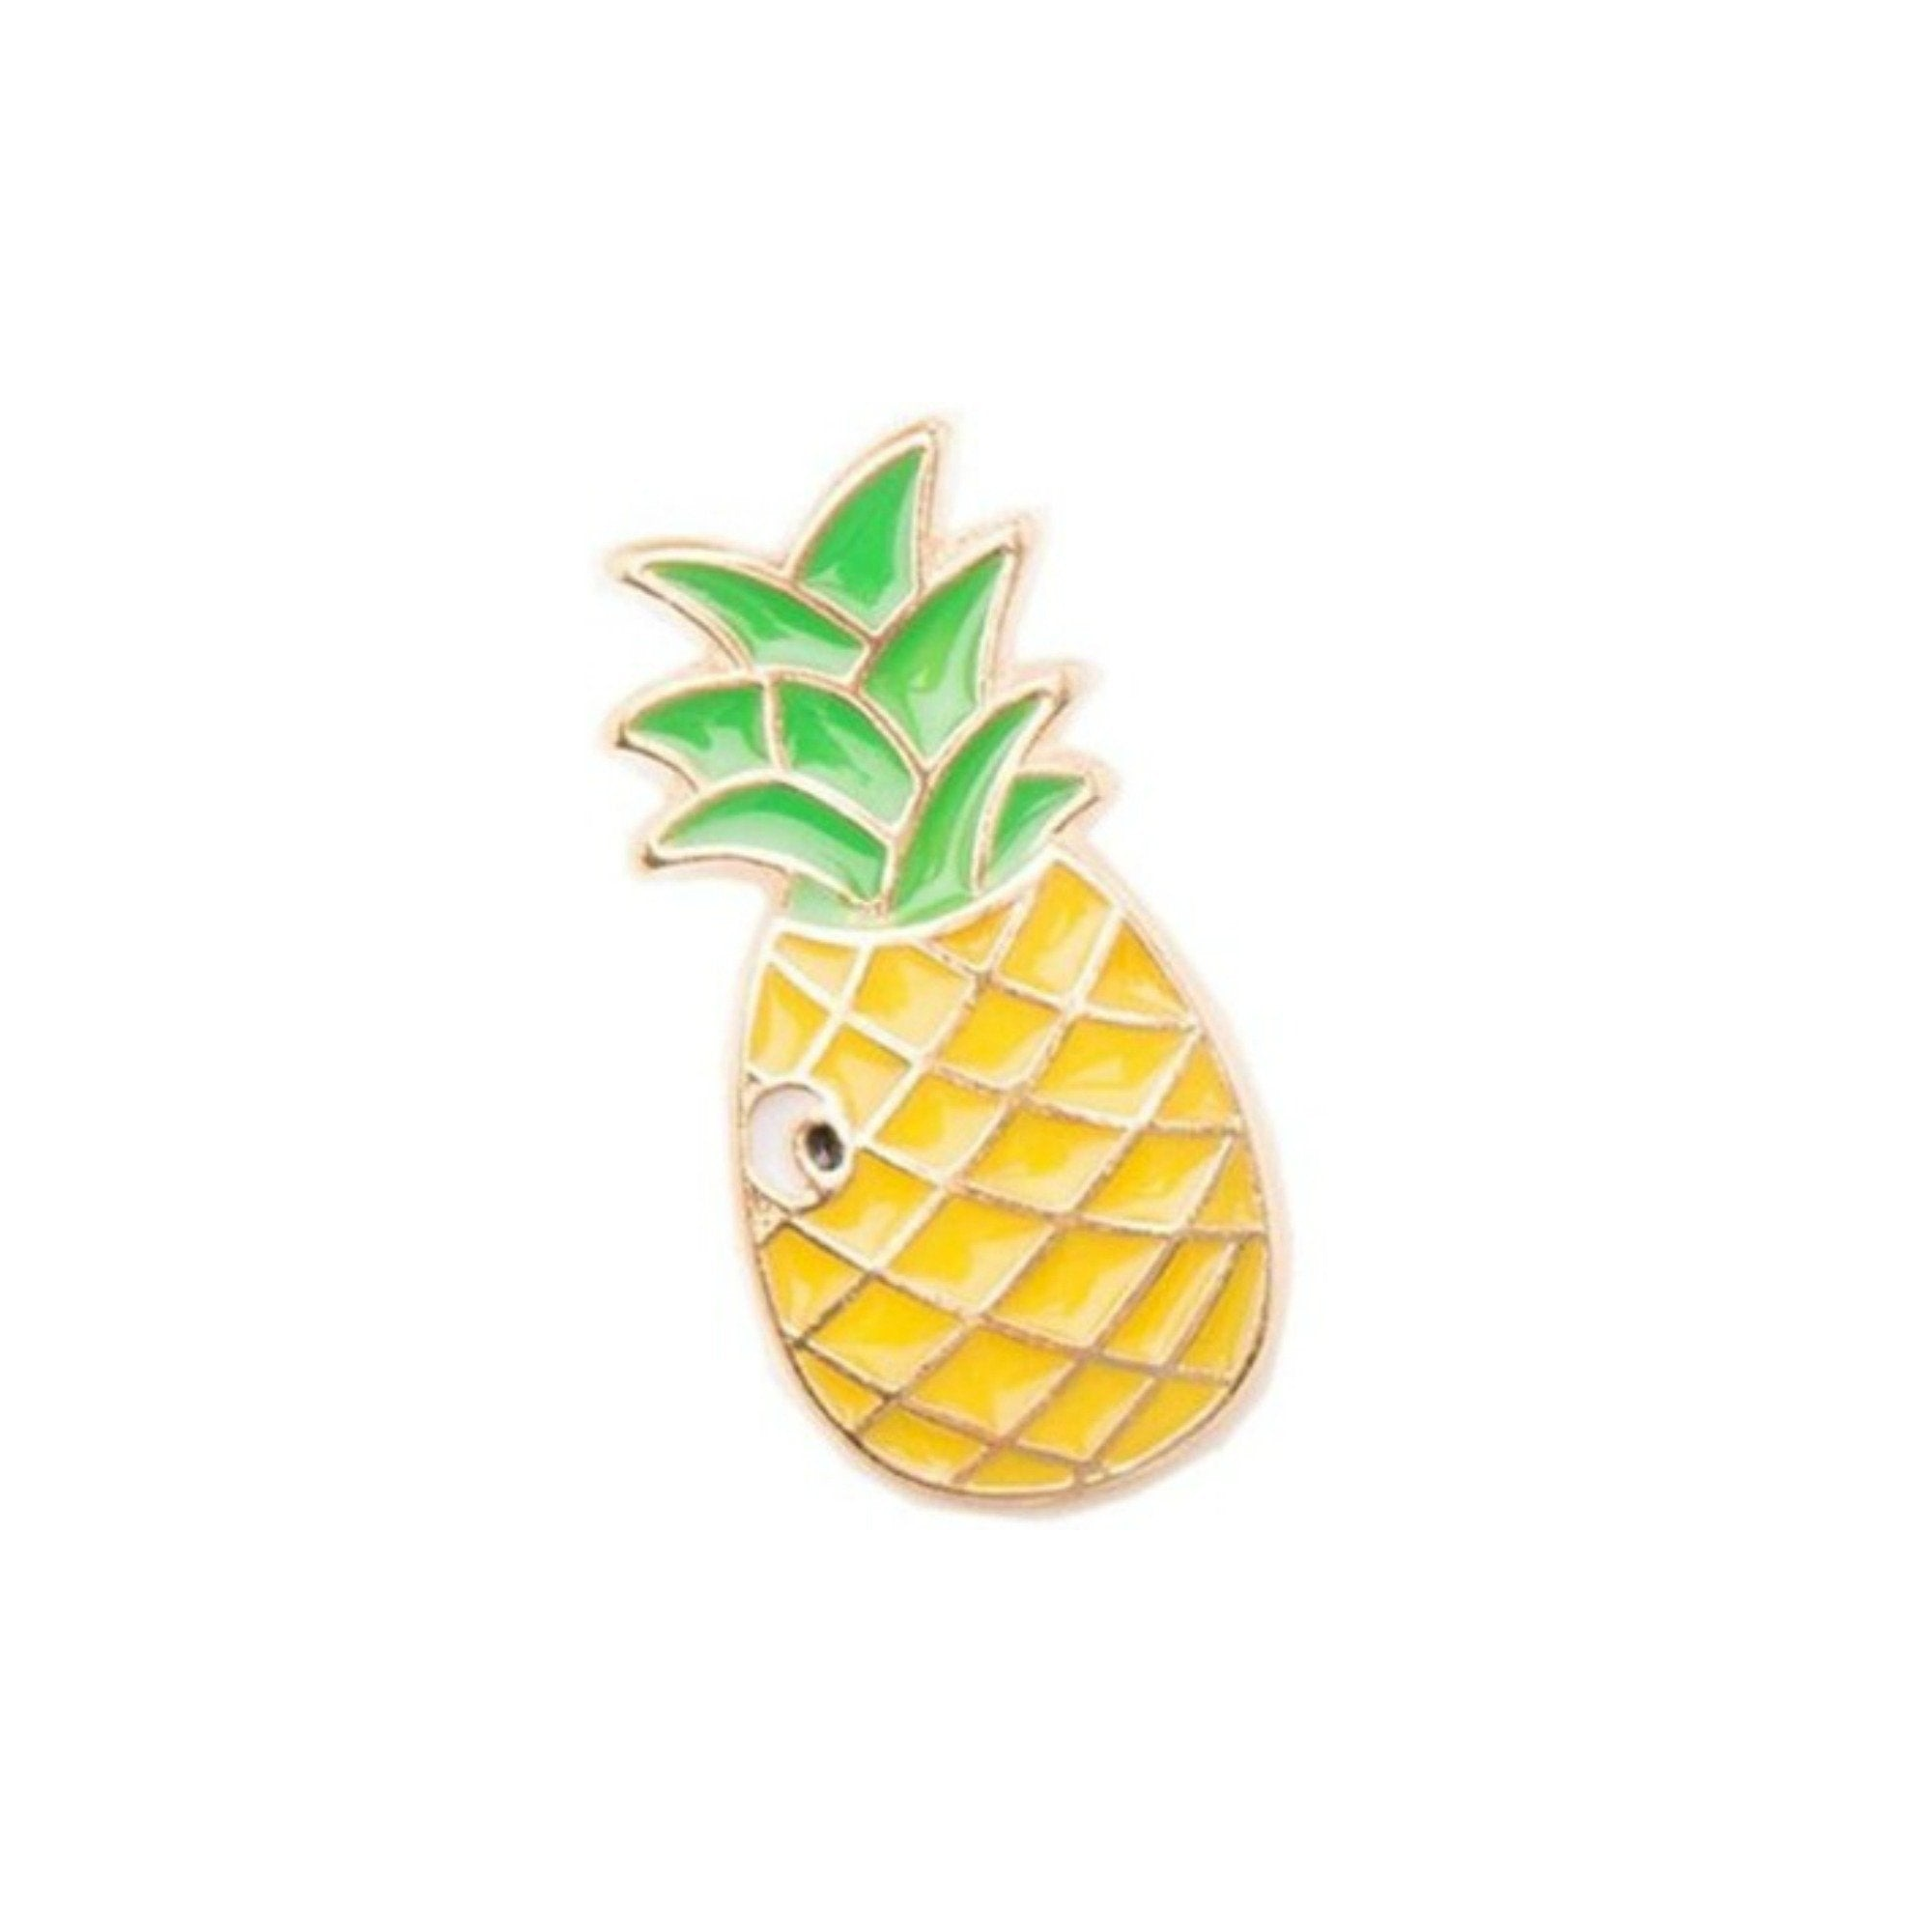 Pineapple Enamel Lapel Pin Badge - Minimum Mouse